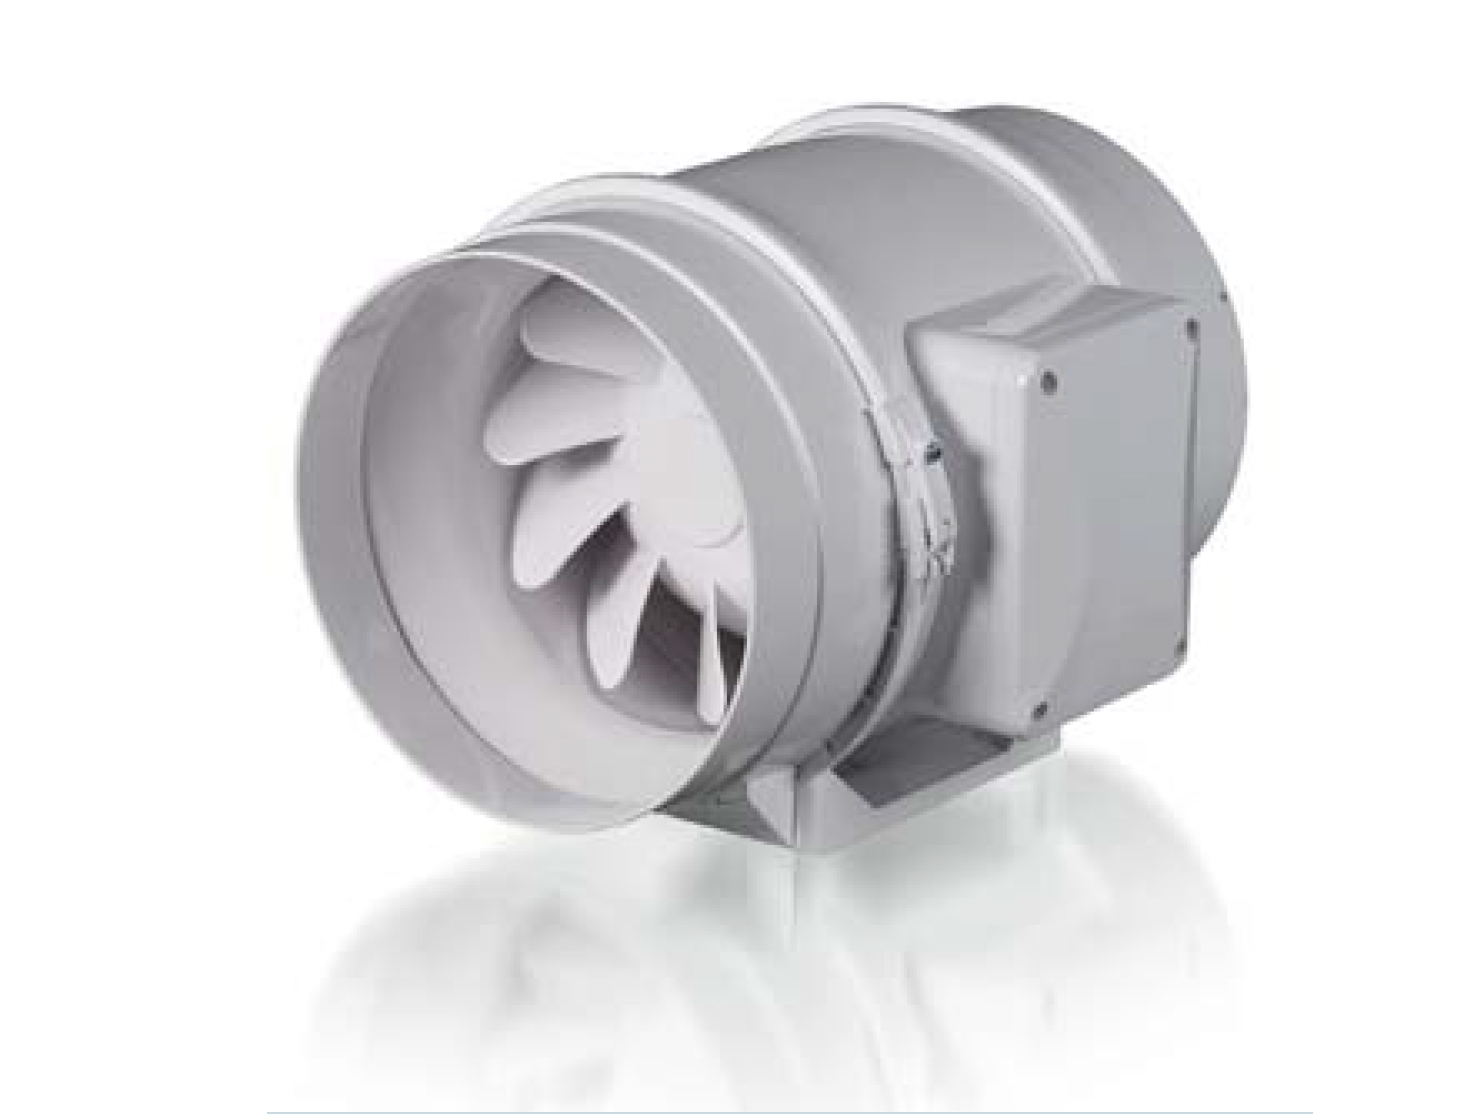 Fan Units Commercial Fans Domestic Axial Fans Special Application Fans  #626669